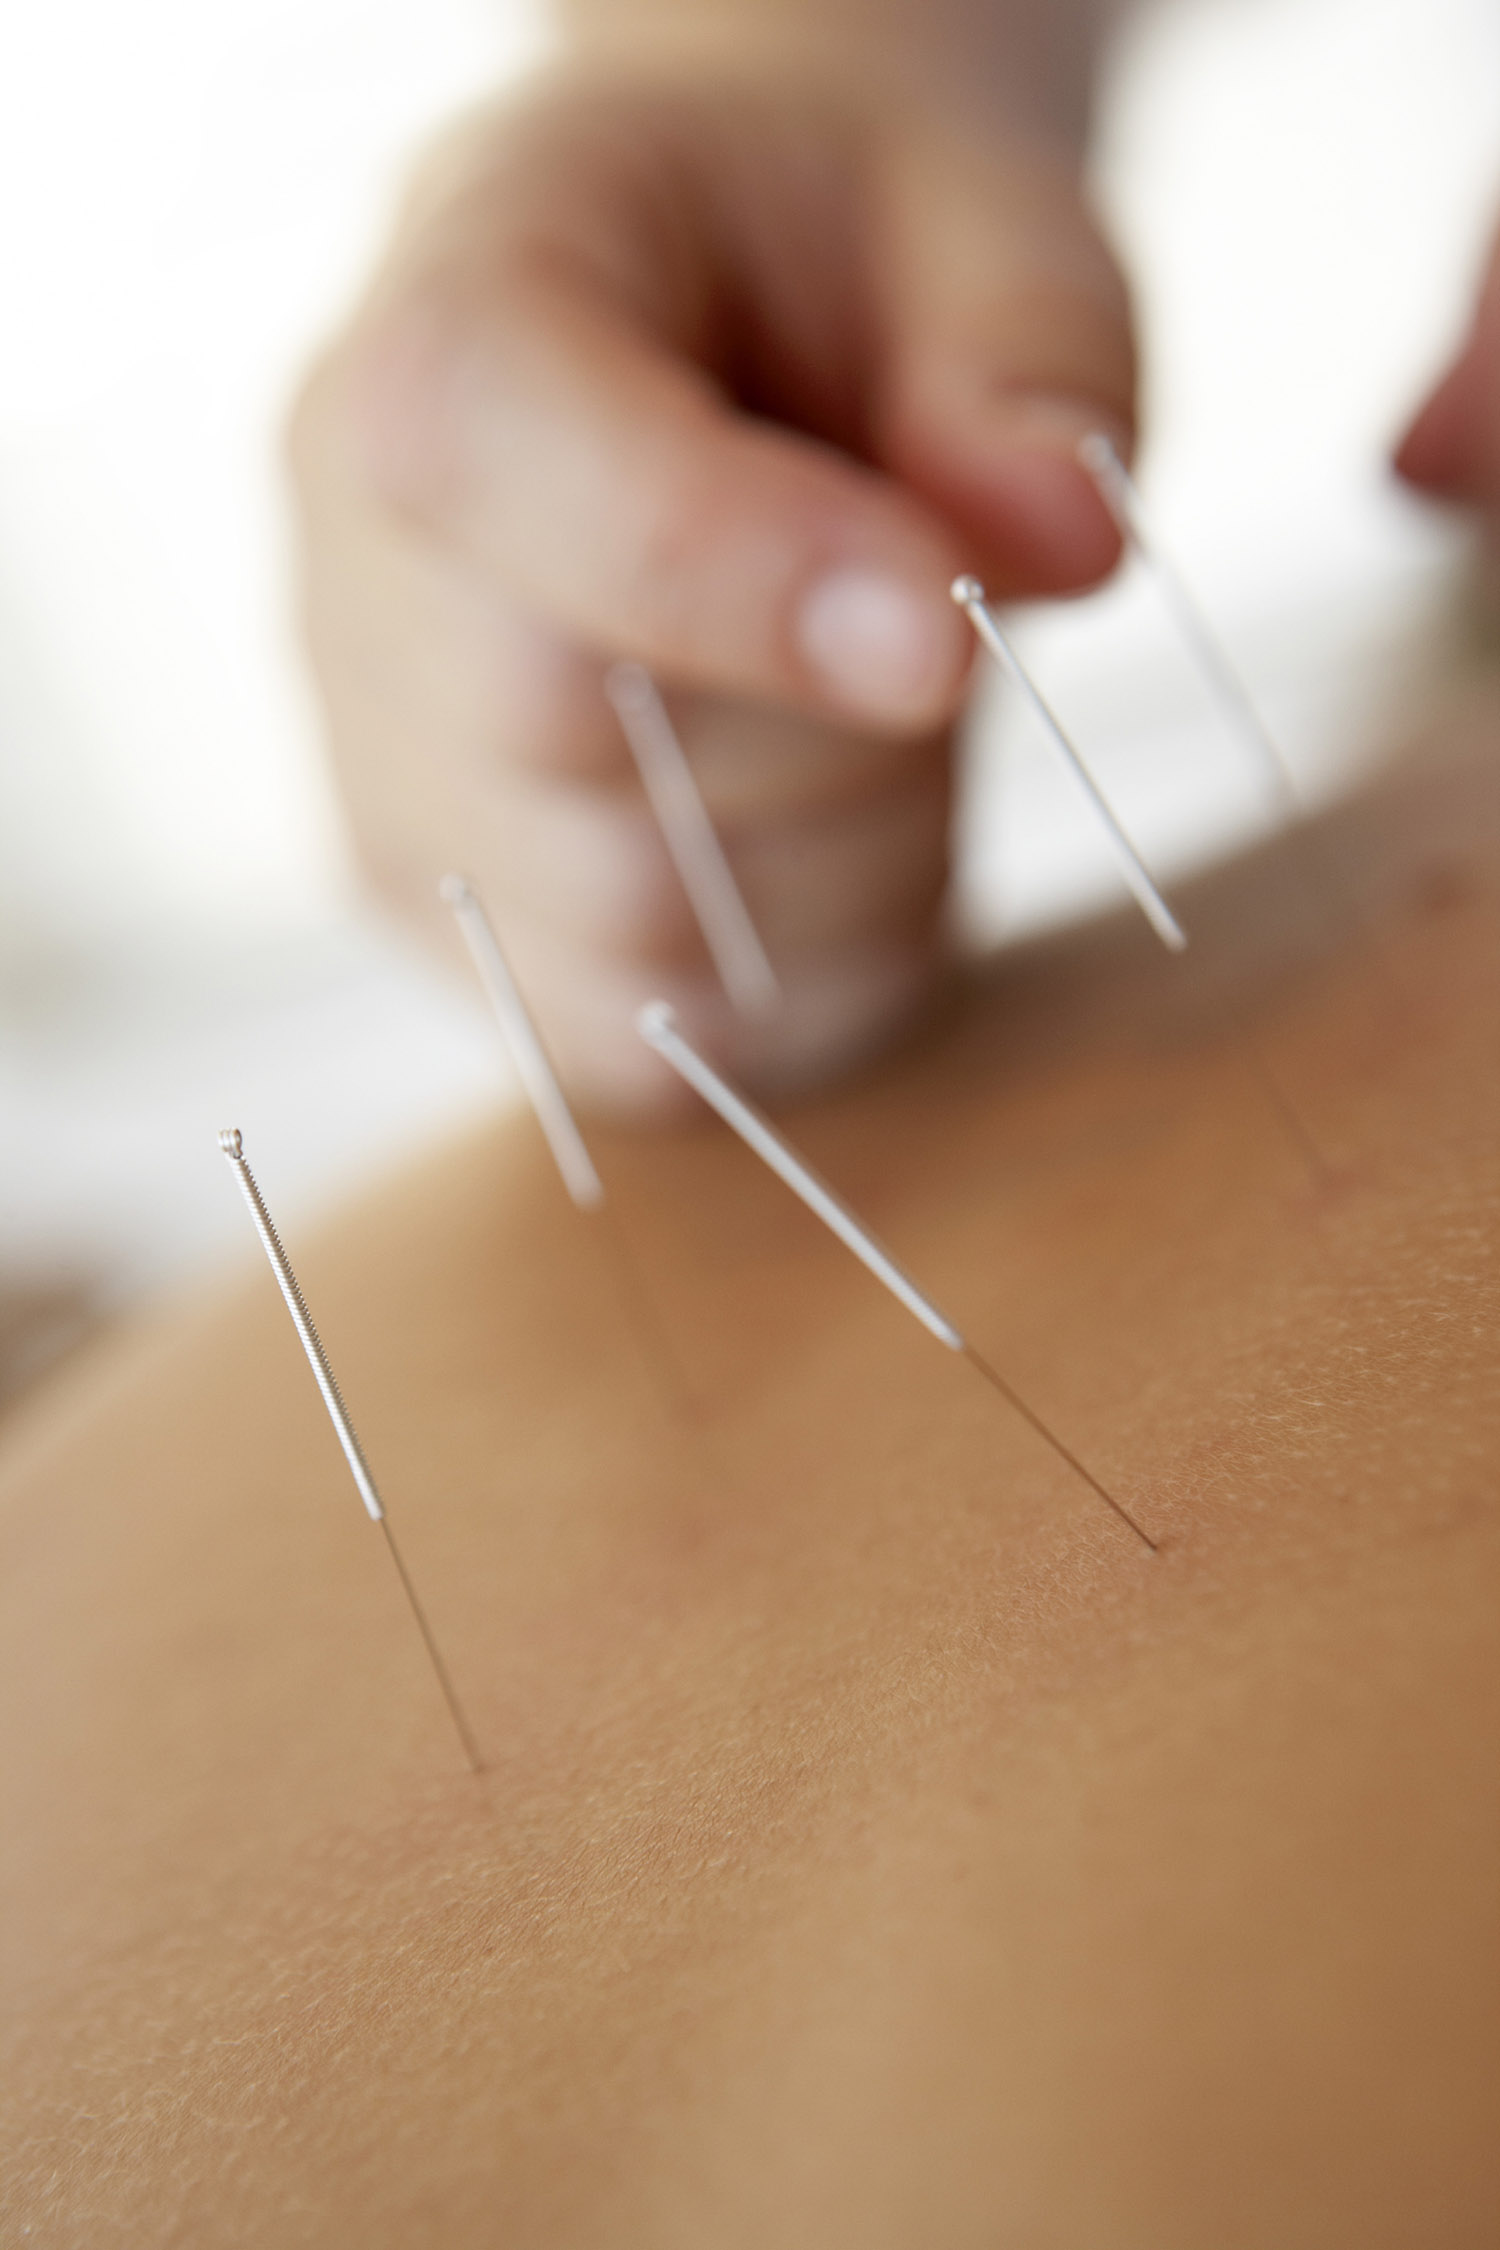 Acupuncture In Nyc